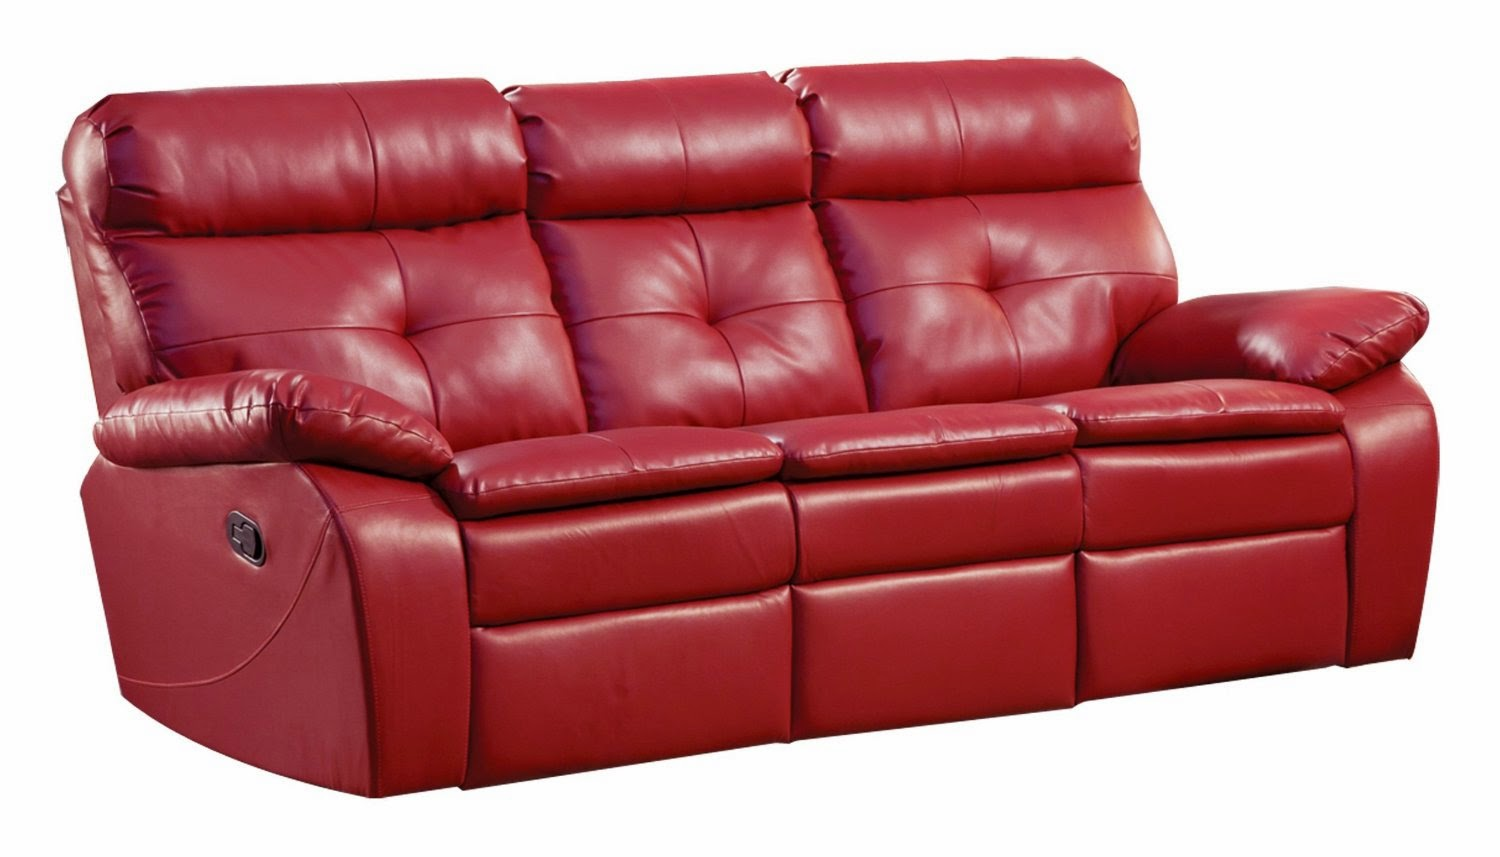 Red Leather Recliner Sofa Uk  sc 1 st  Cheap Reclining Sofa And Loveseat Reveiws - blogger & Cheap Reclining Sofa And Loveseat Reveiws: Best Recliner Sofa ... islam-shia.org